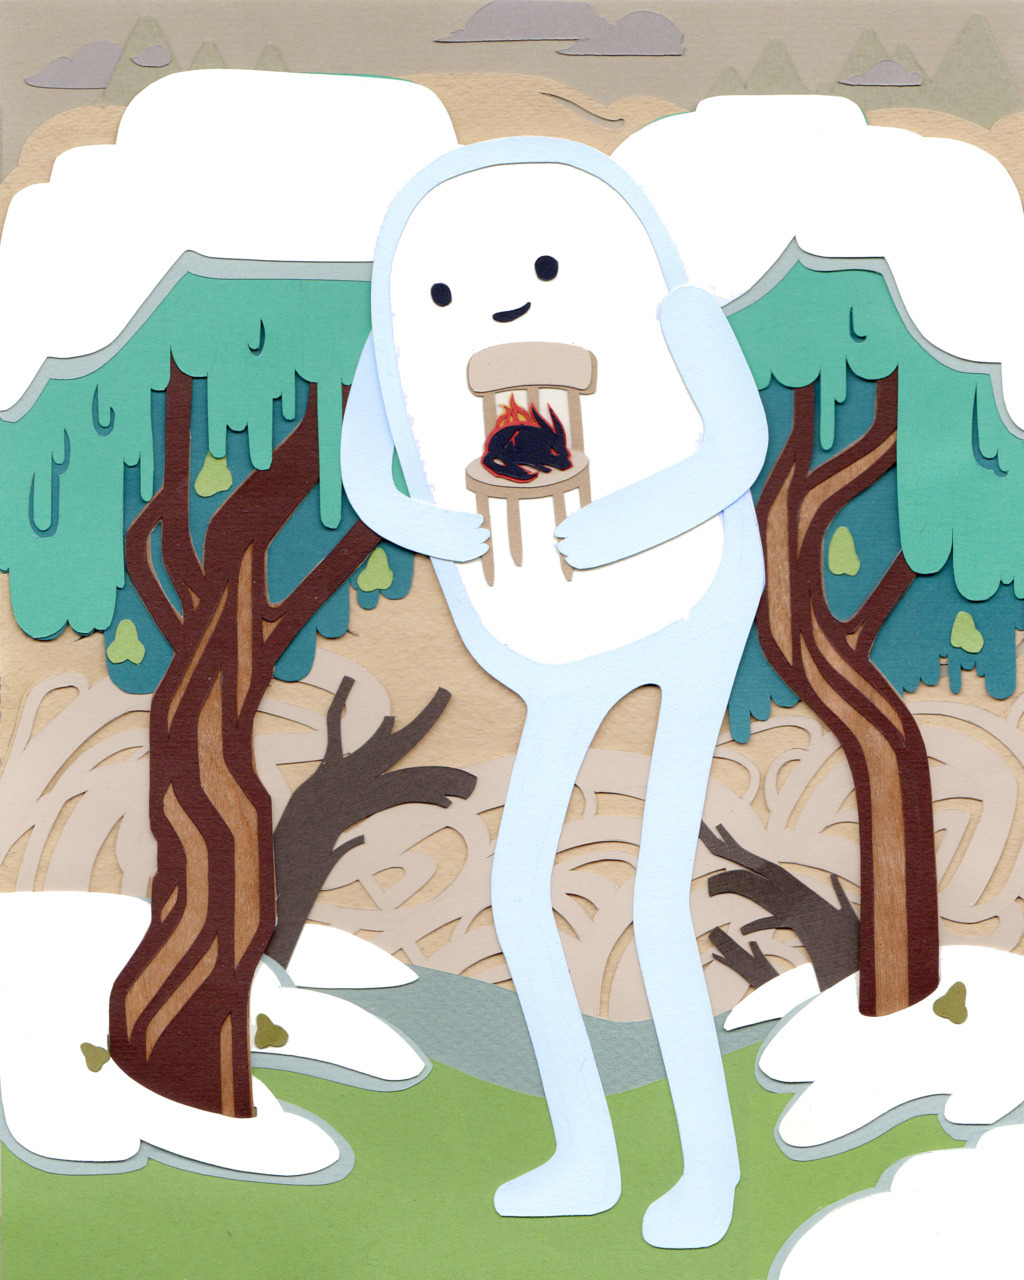 kevinjaystanton:  Adventure Time - Thank You. Made this for my little brother! I absolutely love this episode!